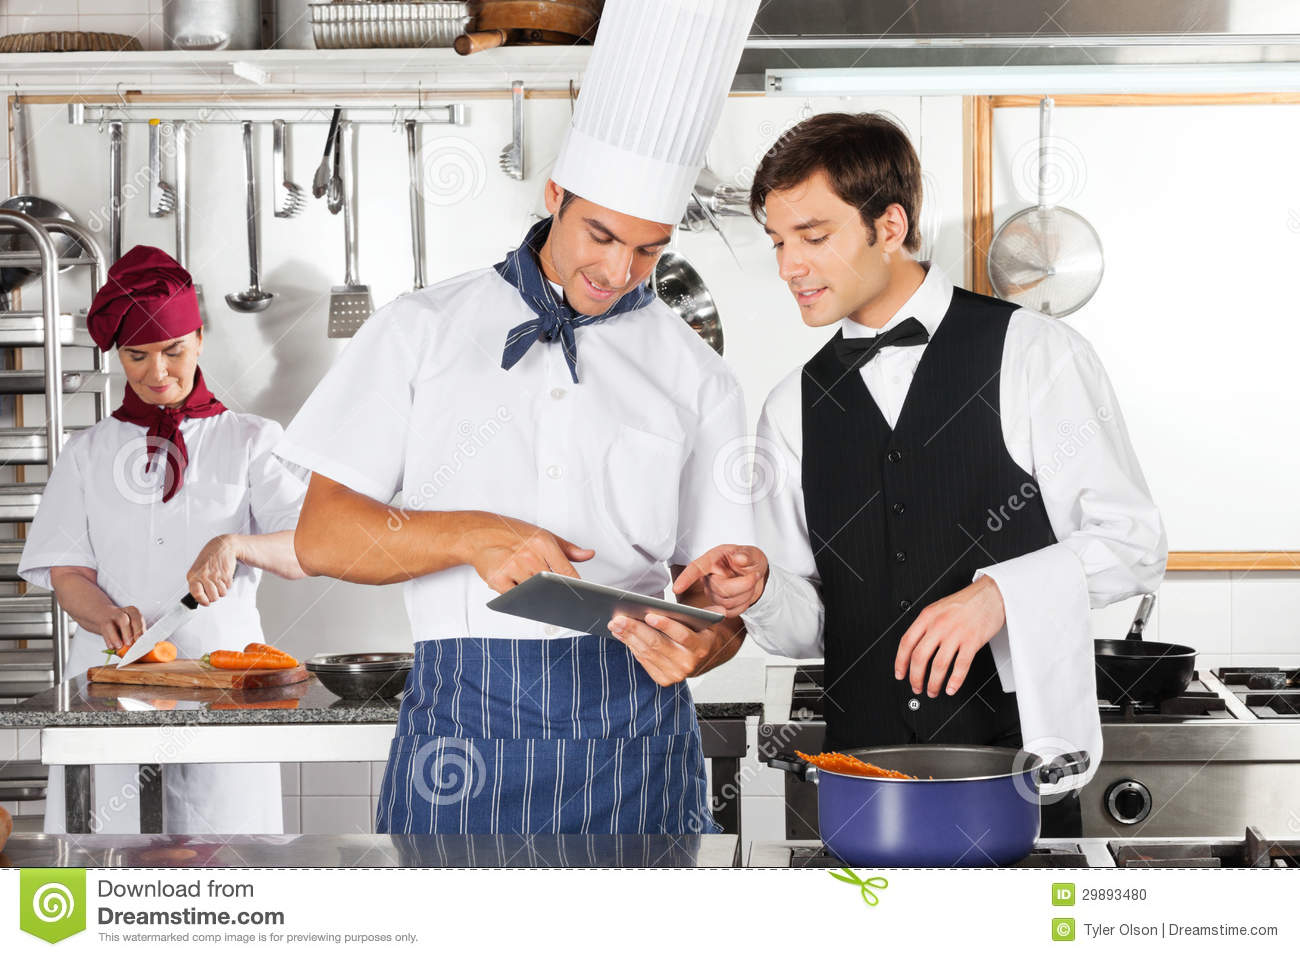 Waiter And Chef Using Digital Tablet In Kitchen Stock Photo - Image ...